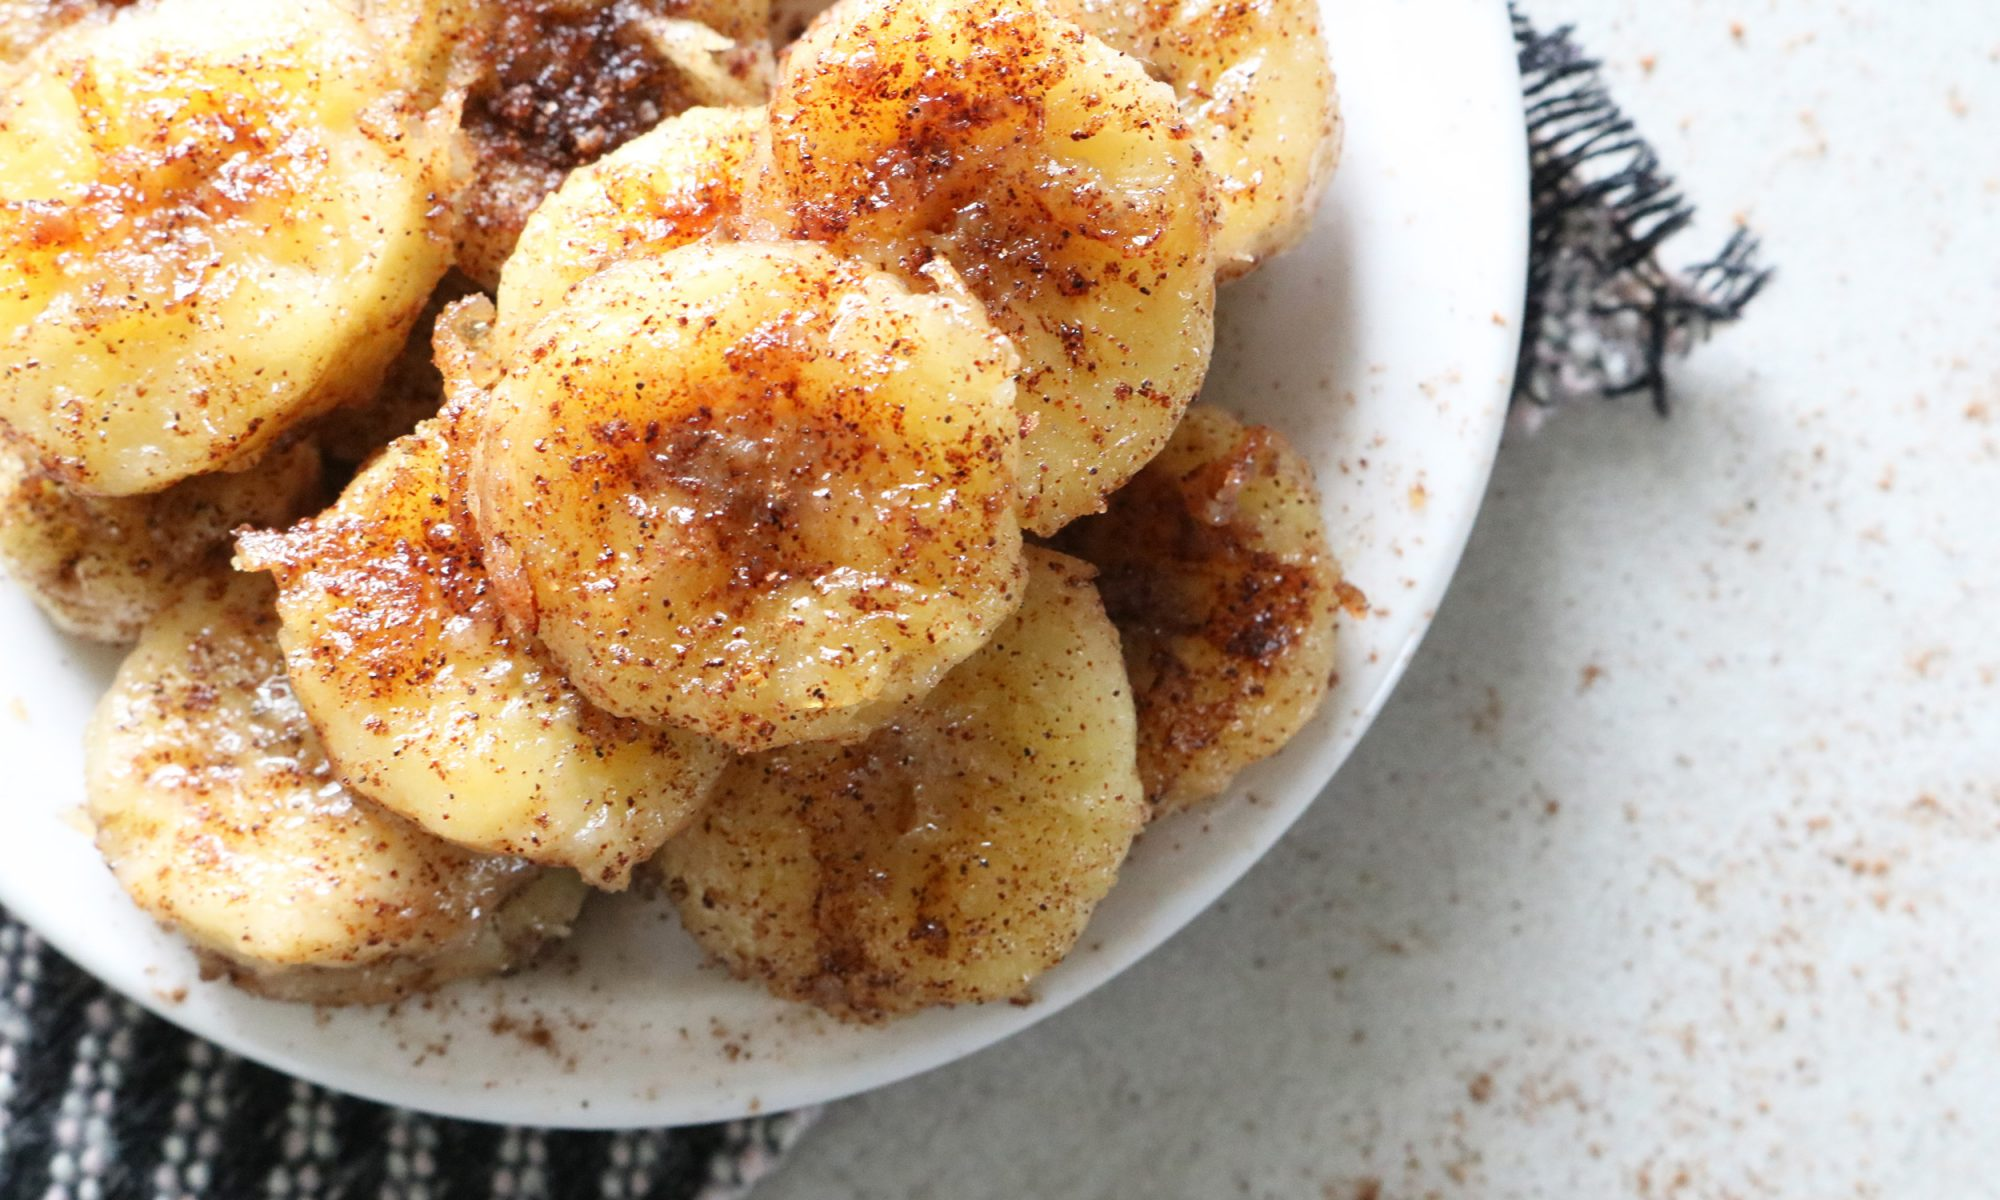 EC: Pan-Fried Cinnamon Bananas Are Ridiculously Easy